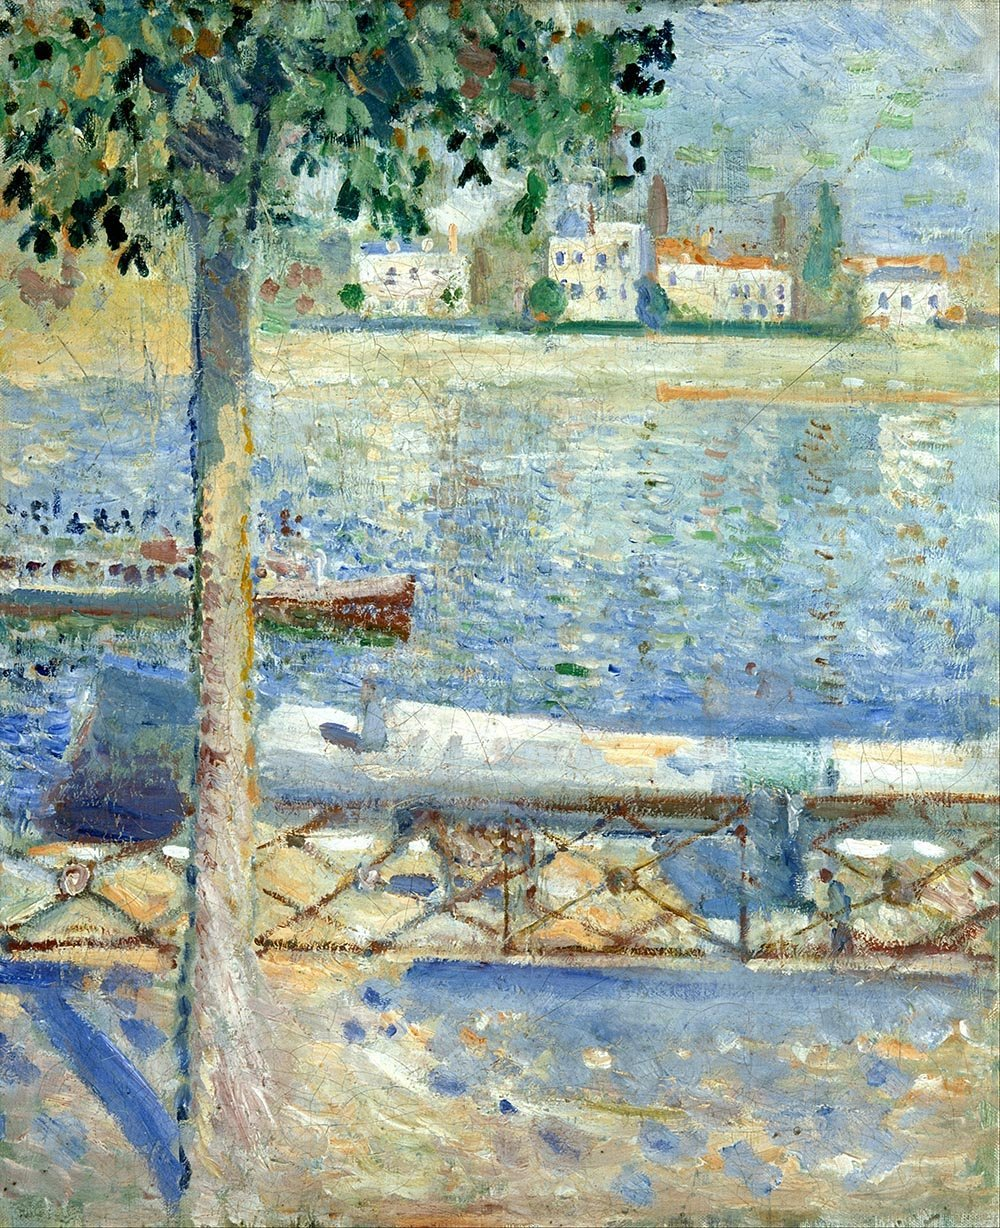 100% Hand Painted Oil on Canvas - Munch - The Seine at St Cloud - 20x24 Inch